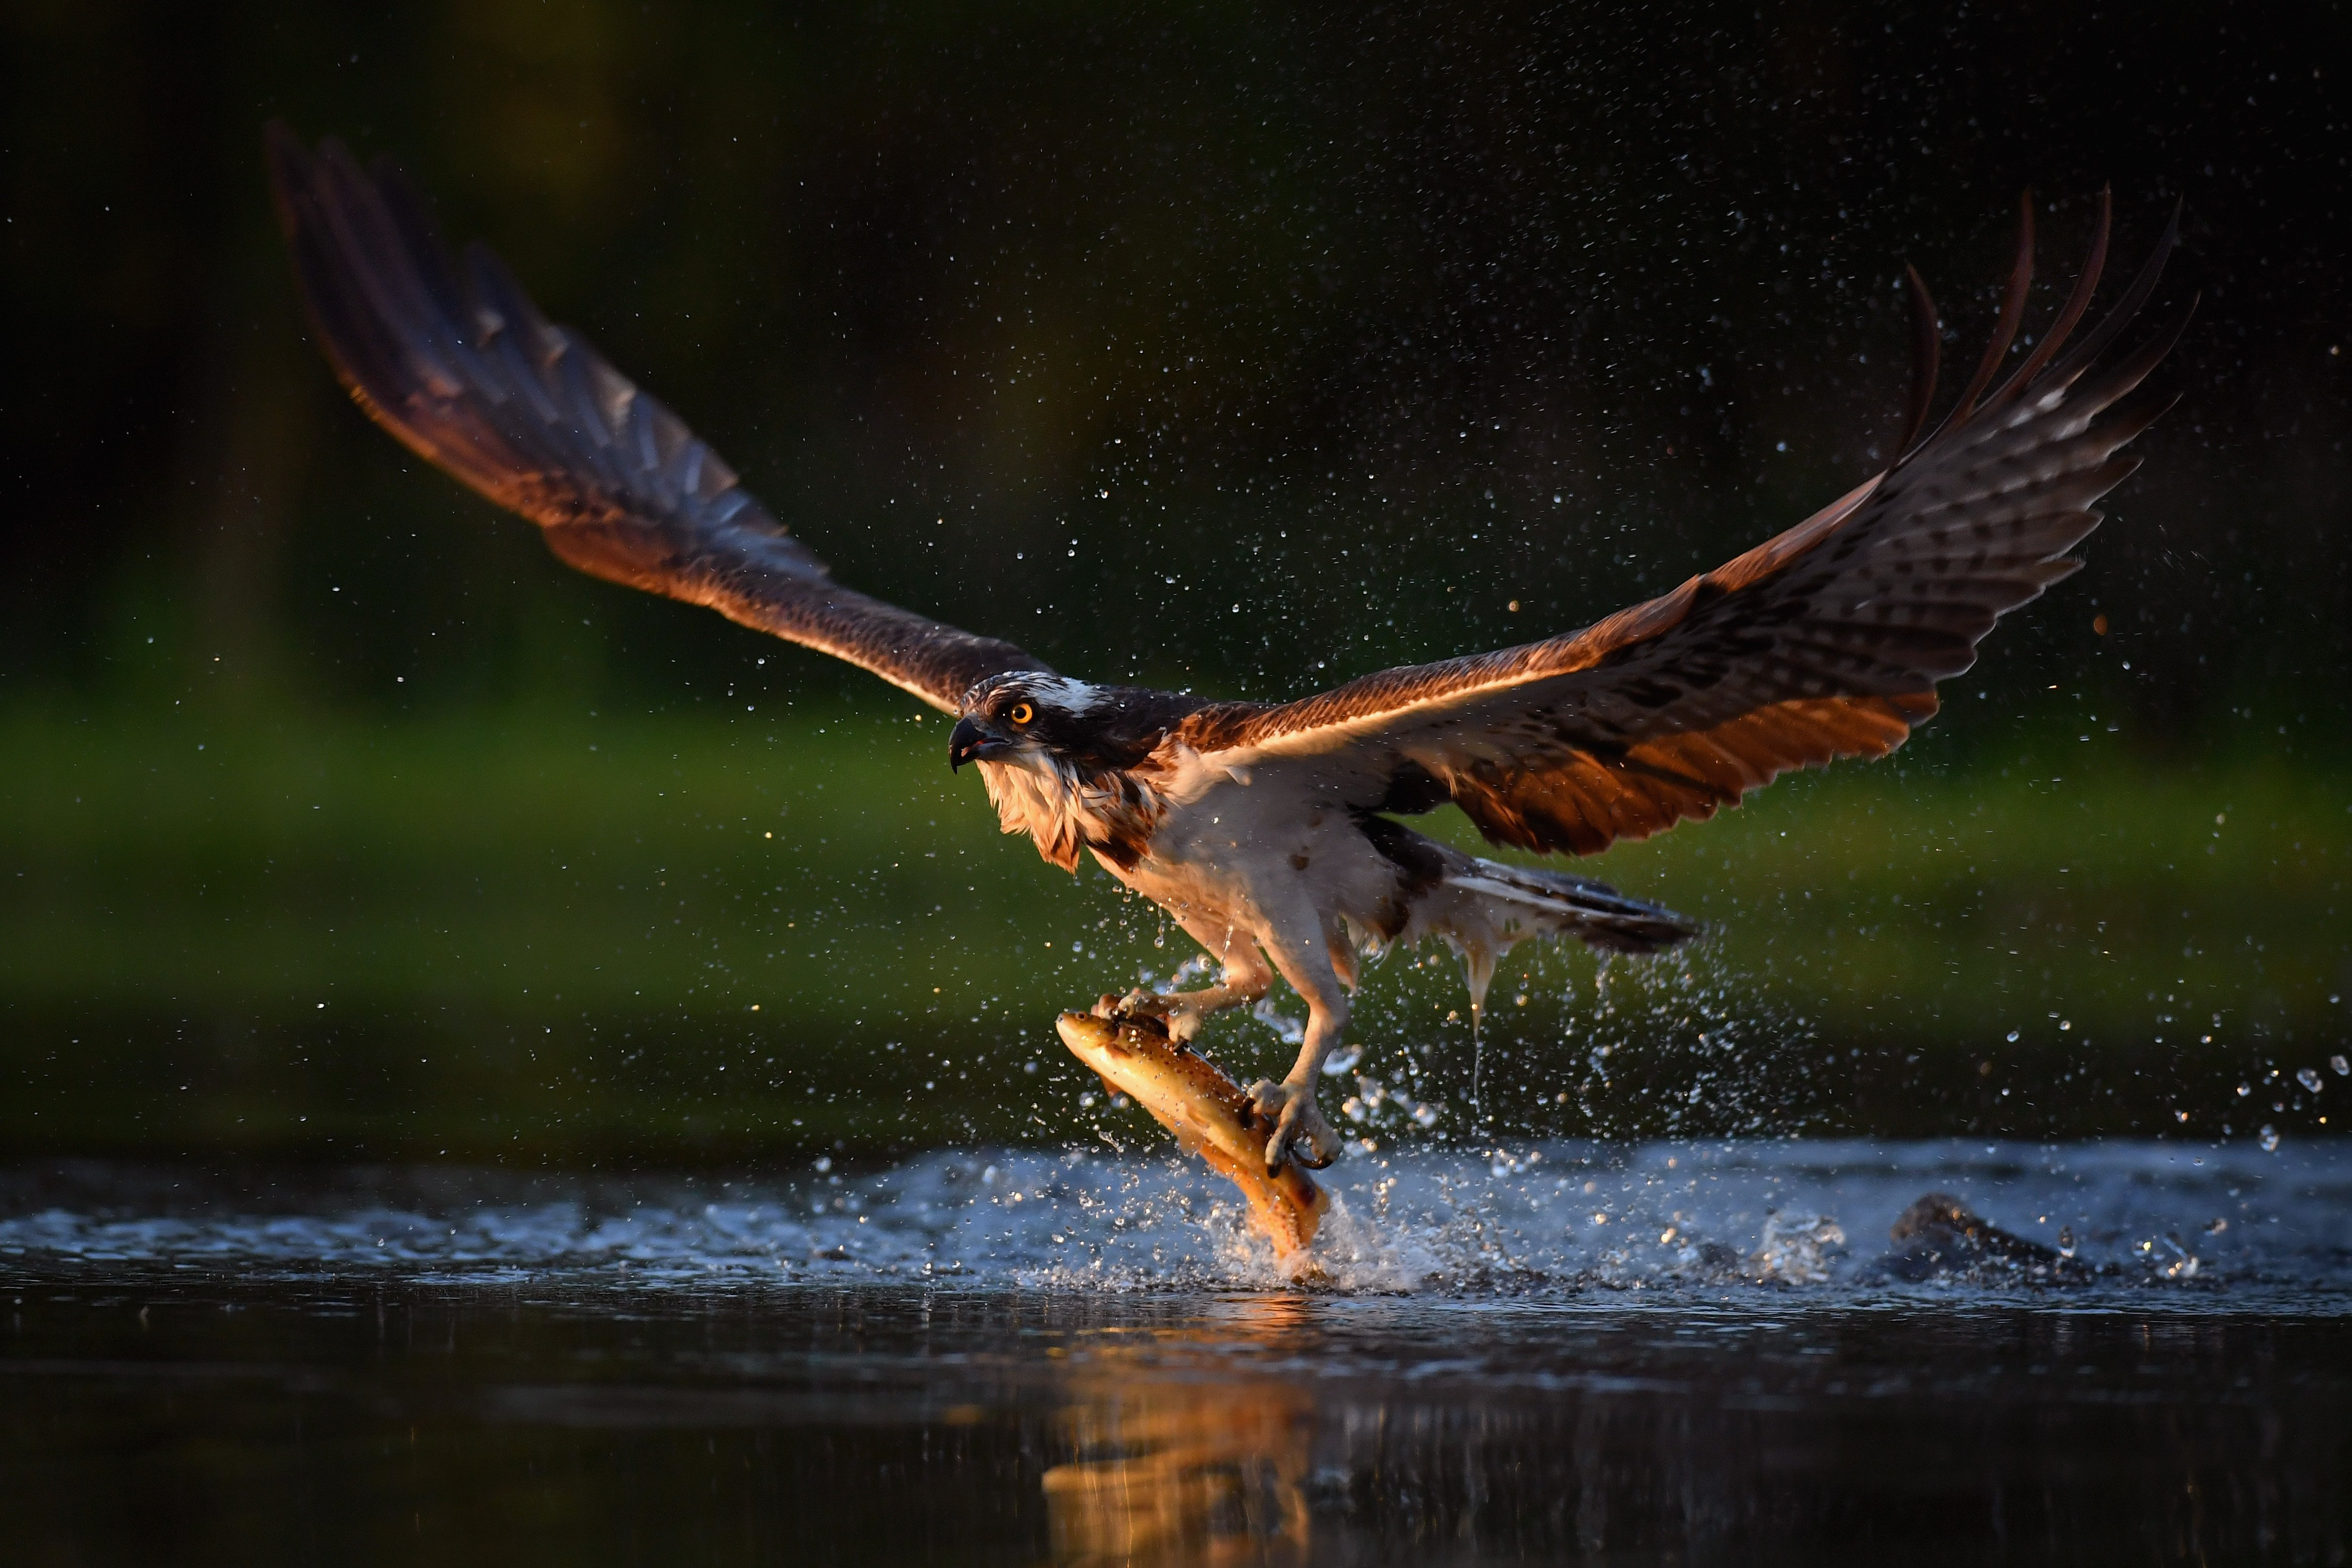 An osprey can zero in on an unassuming trout, even amid distracting sensory information such as the motion of the river's current. This ability is due in part to automatic filtering mechanisms hard-wired in the brain. Photo by Jeff J Mitchell / Staff / Getty Images.